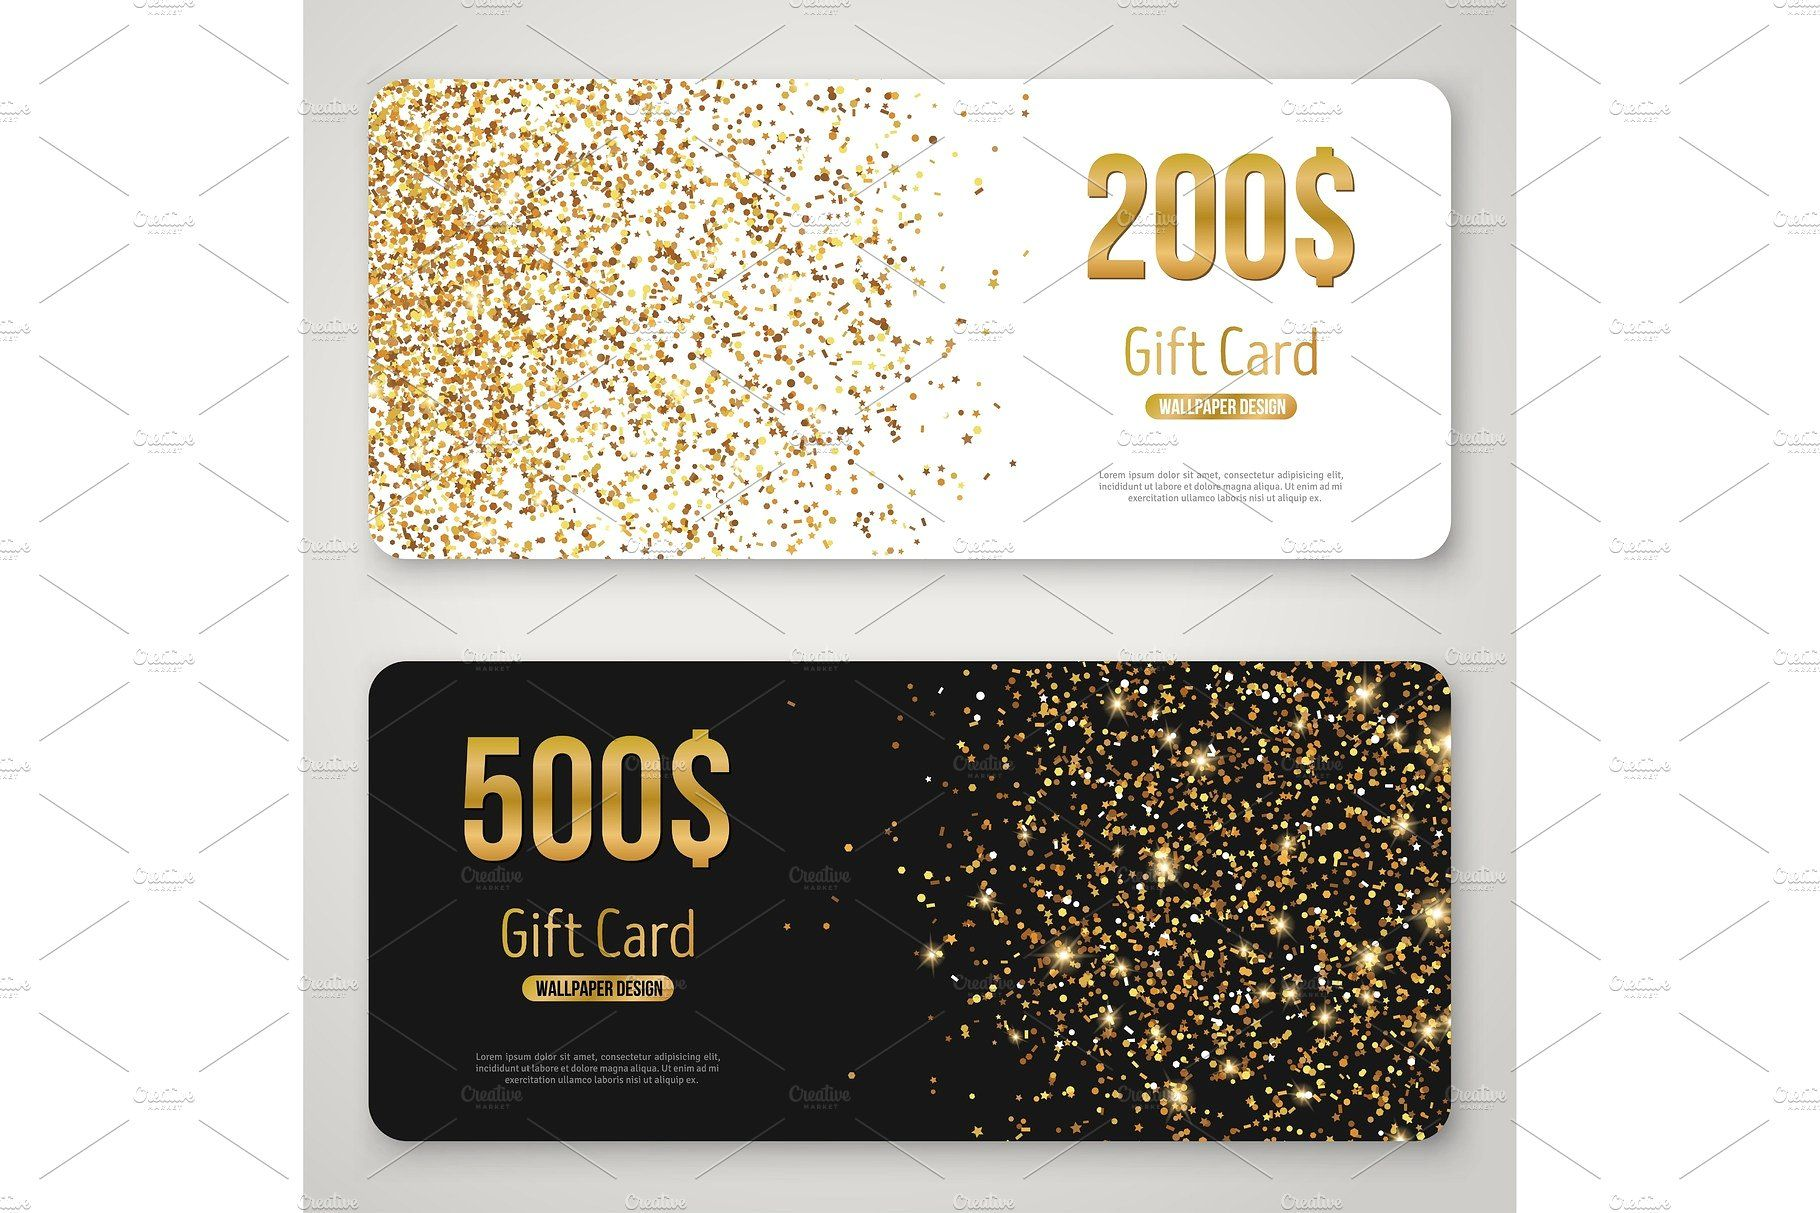 Gift Card Design With Gold Glitter Texture Gift Card Template Gift Card Design Vip Card Design